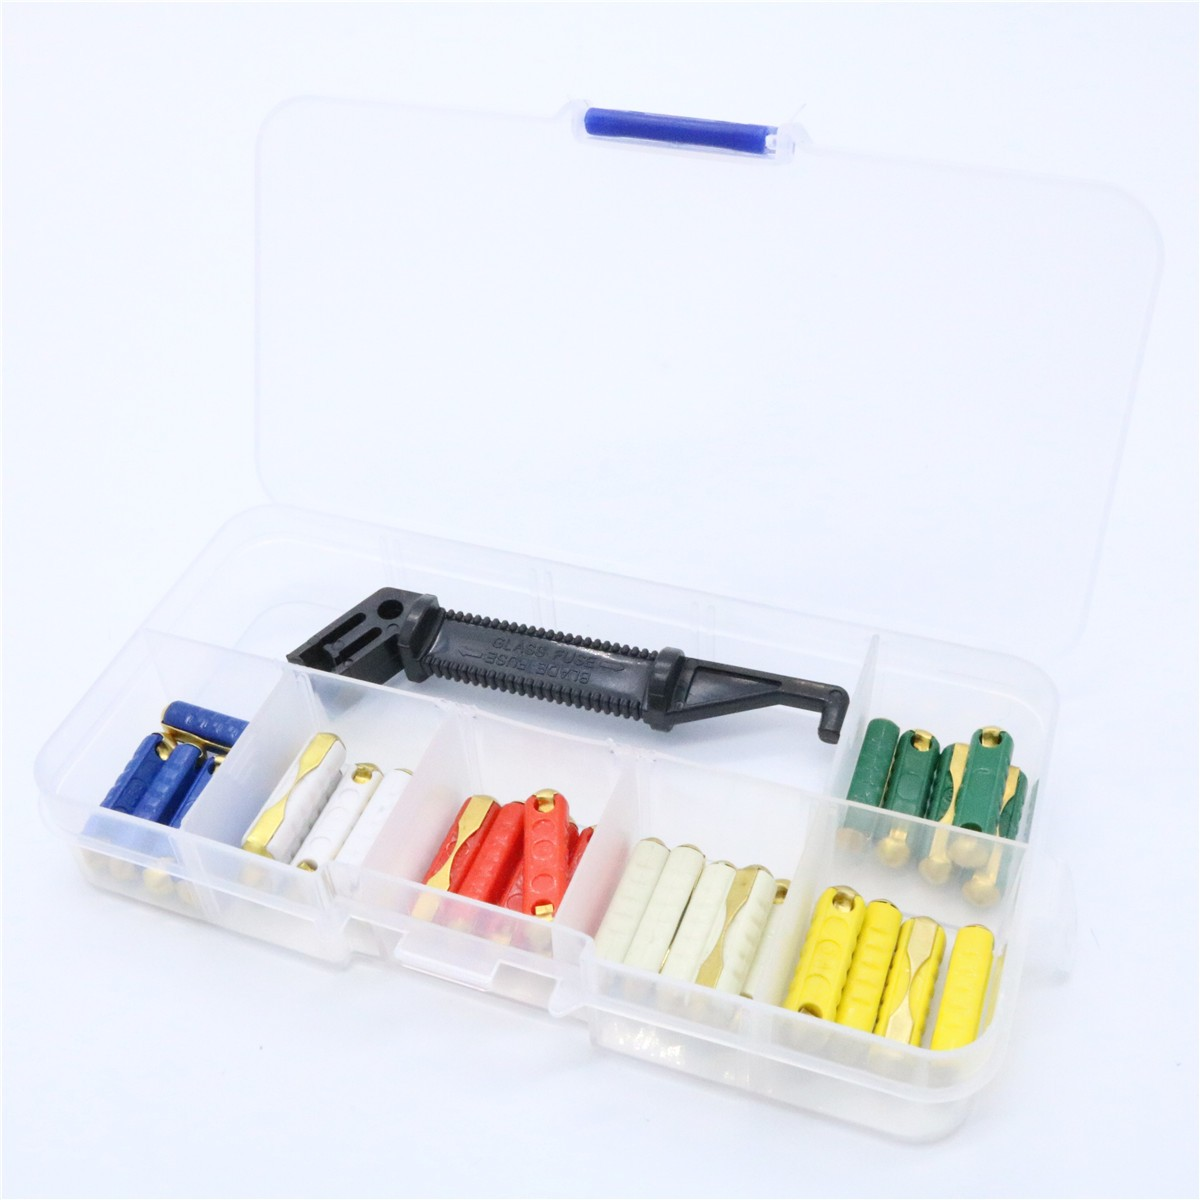 32v european continental car fuse kit fuse puller plastic box assortment auto car accessories accesorios automovil in fuses from automobiles motorcycles  [ 1200 x 1200 Pixel ]